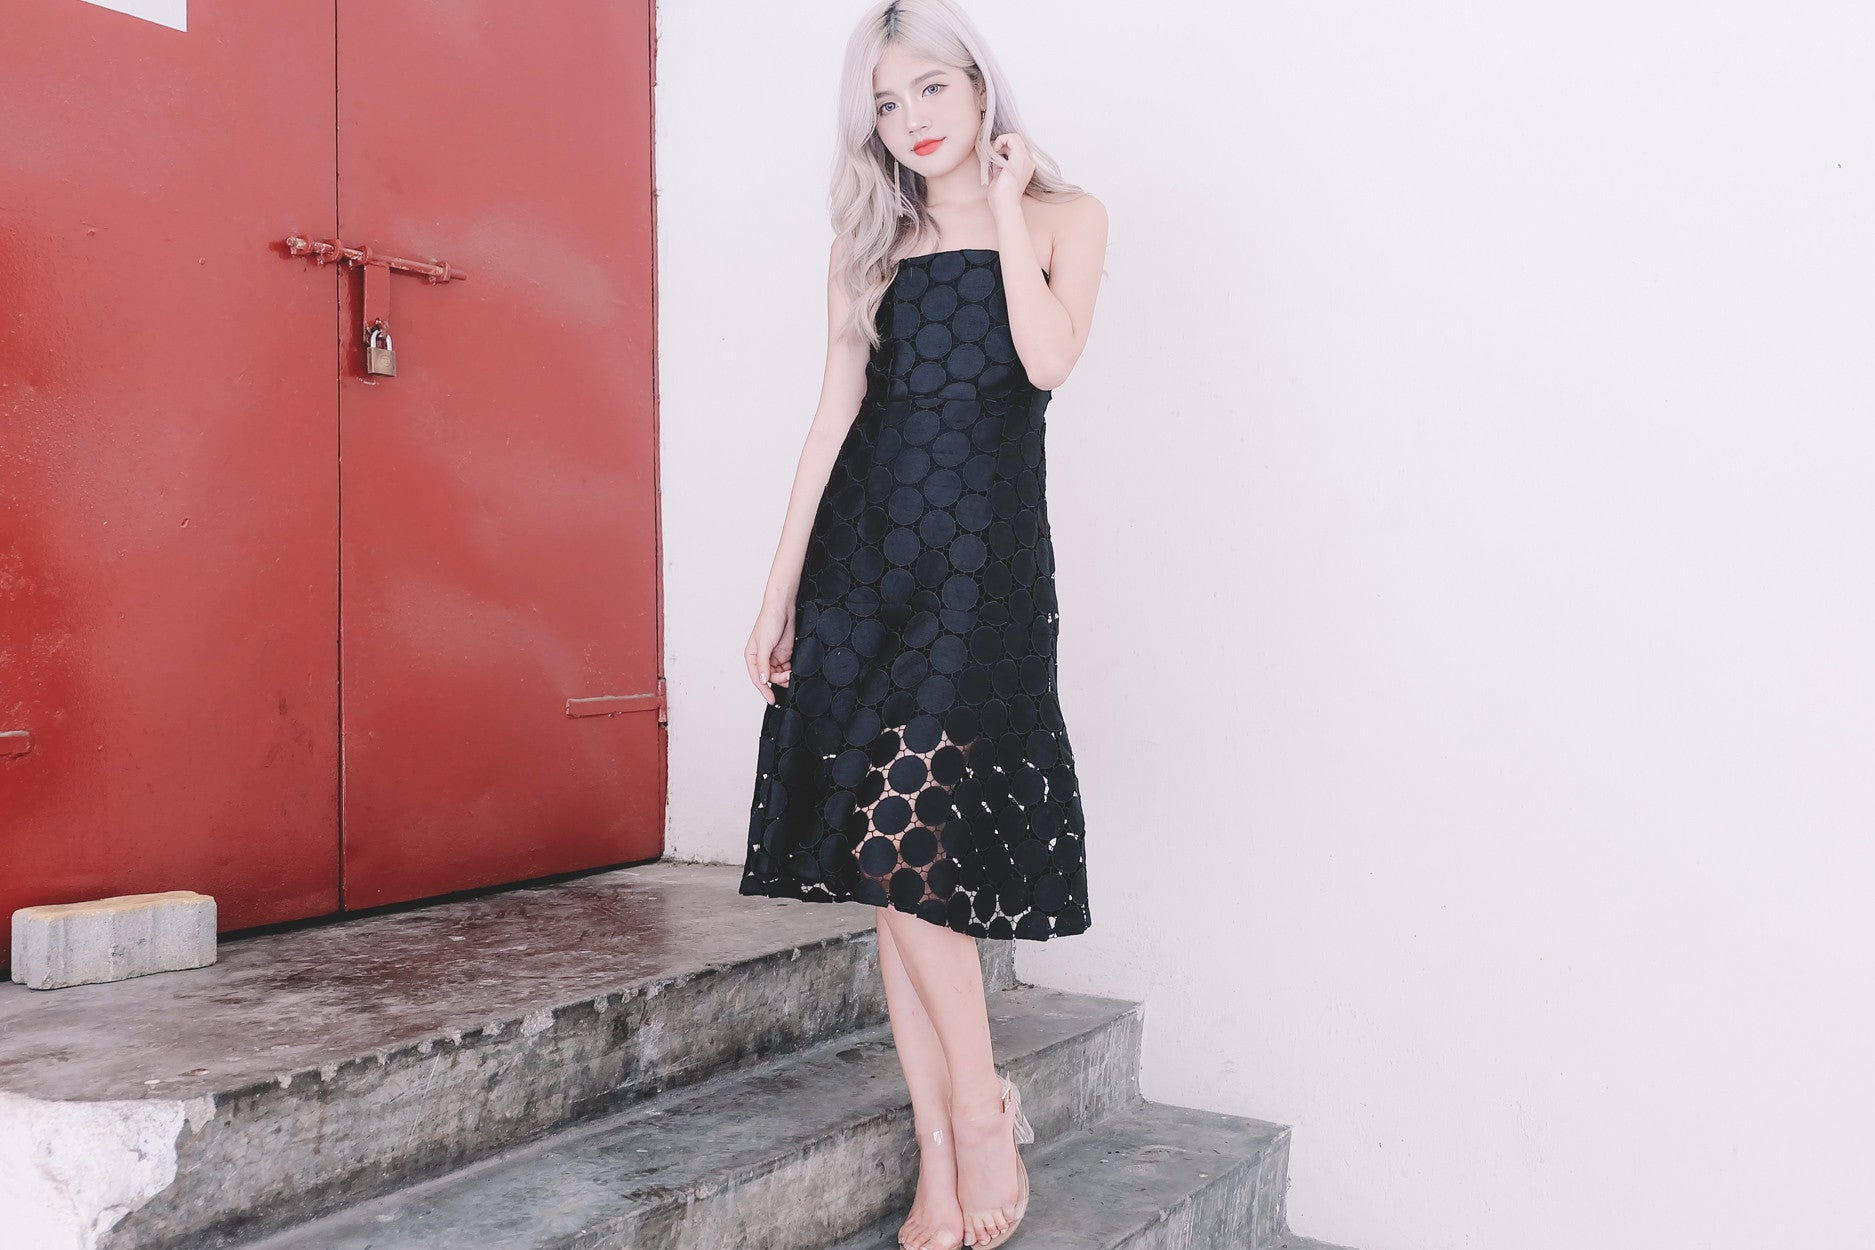 Circle Lace Cap Tube Dress in Black